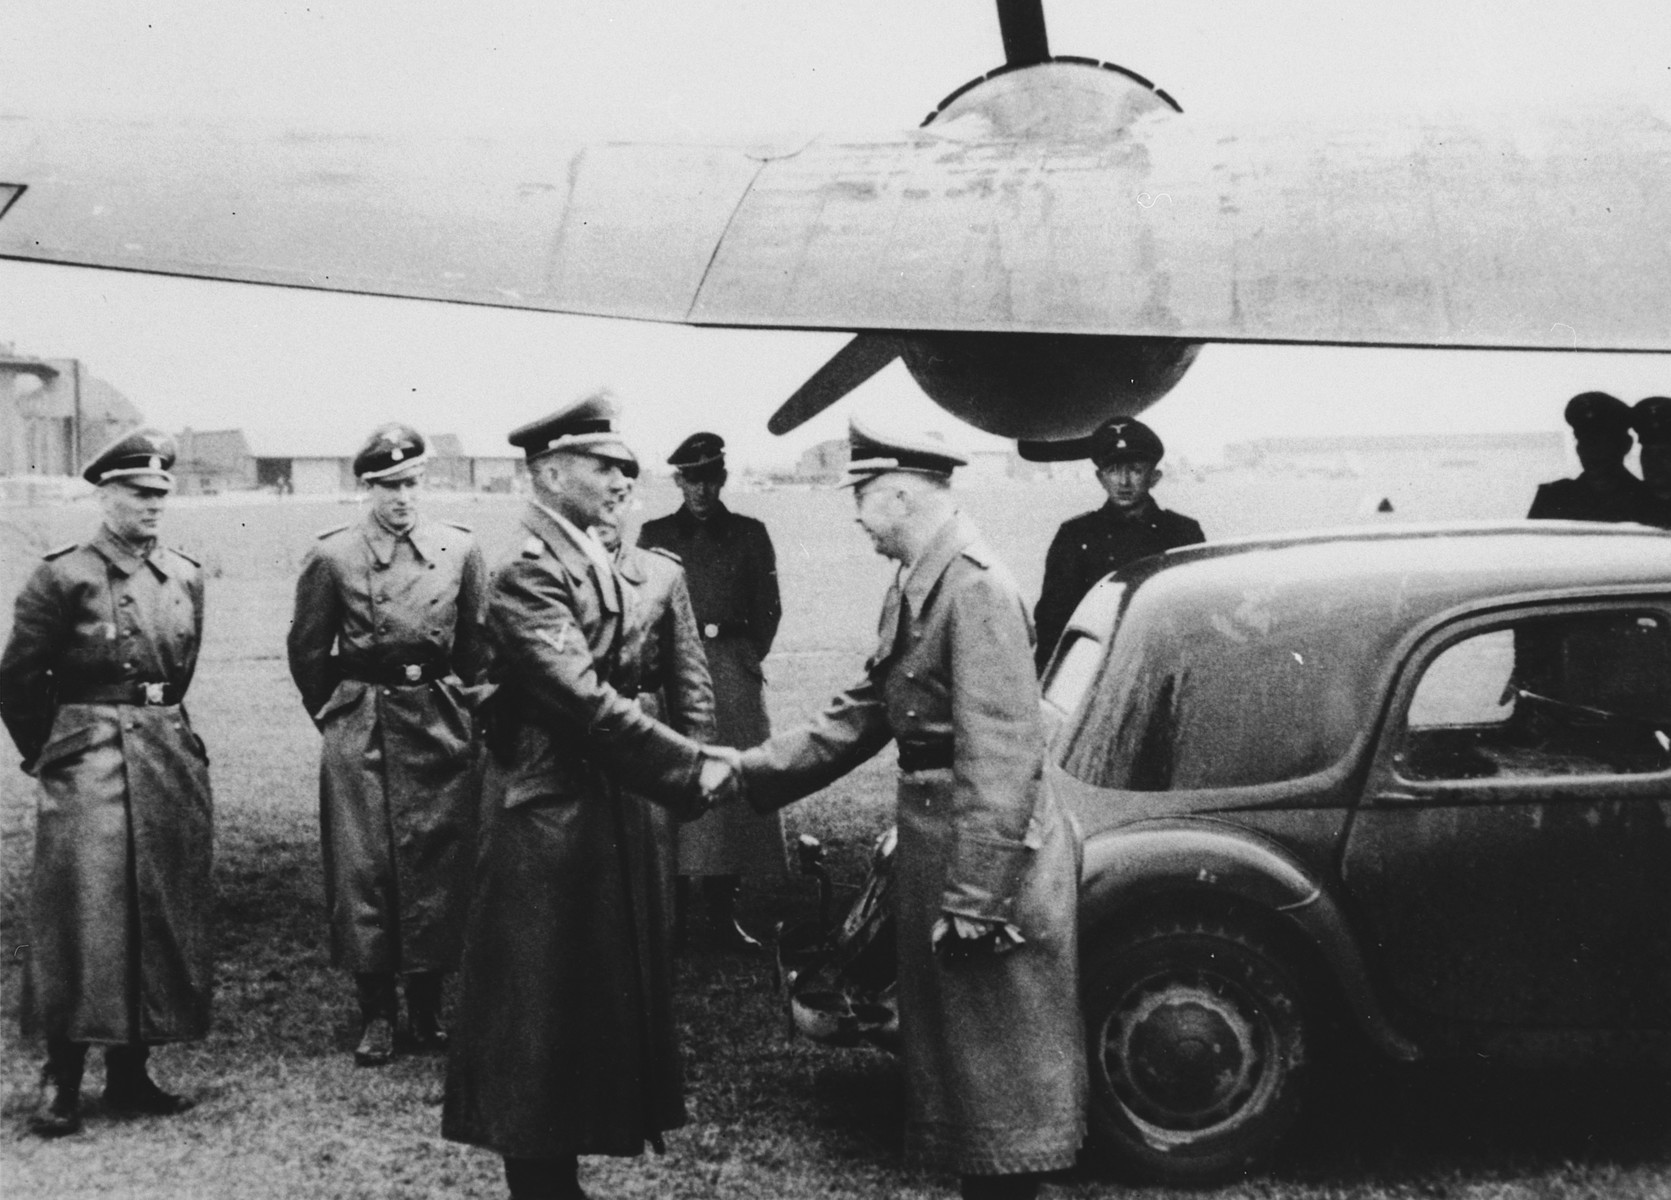 Reichsfuehrer Heinrich Himmler greets an unidentified officer beneath the wing of a military airplane.  Also pictured is SS-Sturmbannfuehrer Werner Grothmann, on the far left.